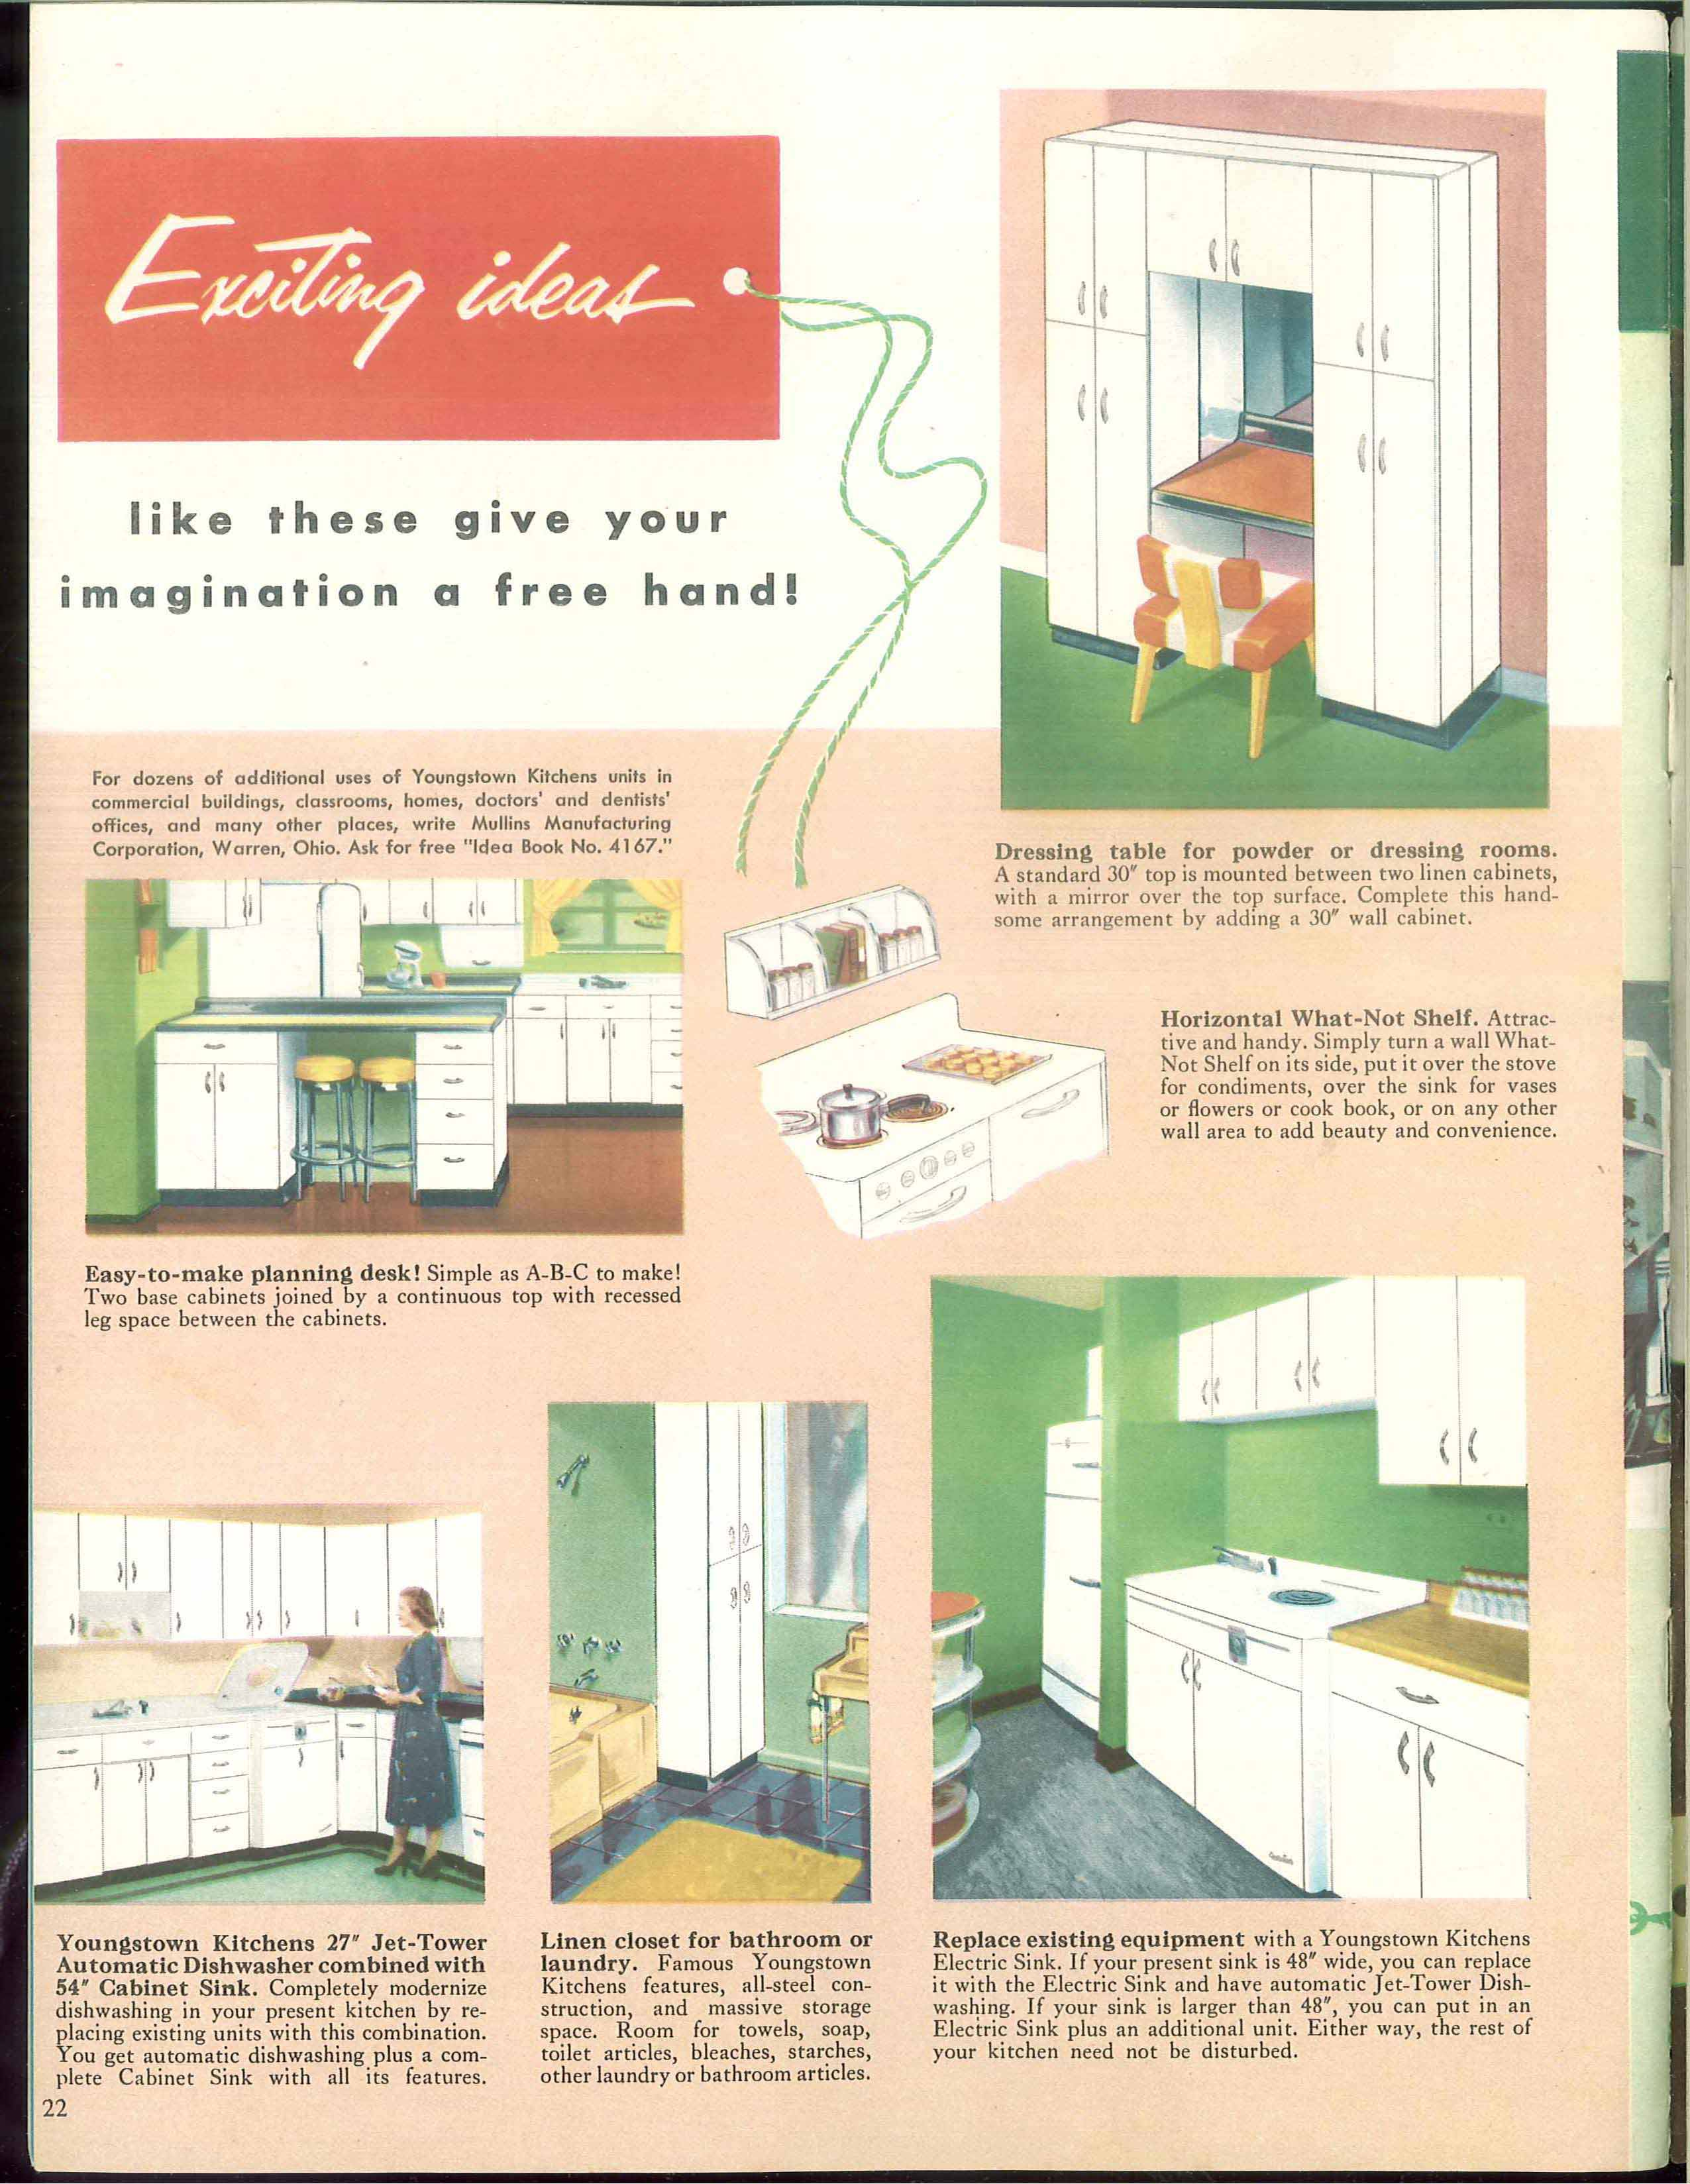 History of mullins manufacturing corporation mahoning valley the makers of the youngstown kitchen workwithnaturefo